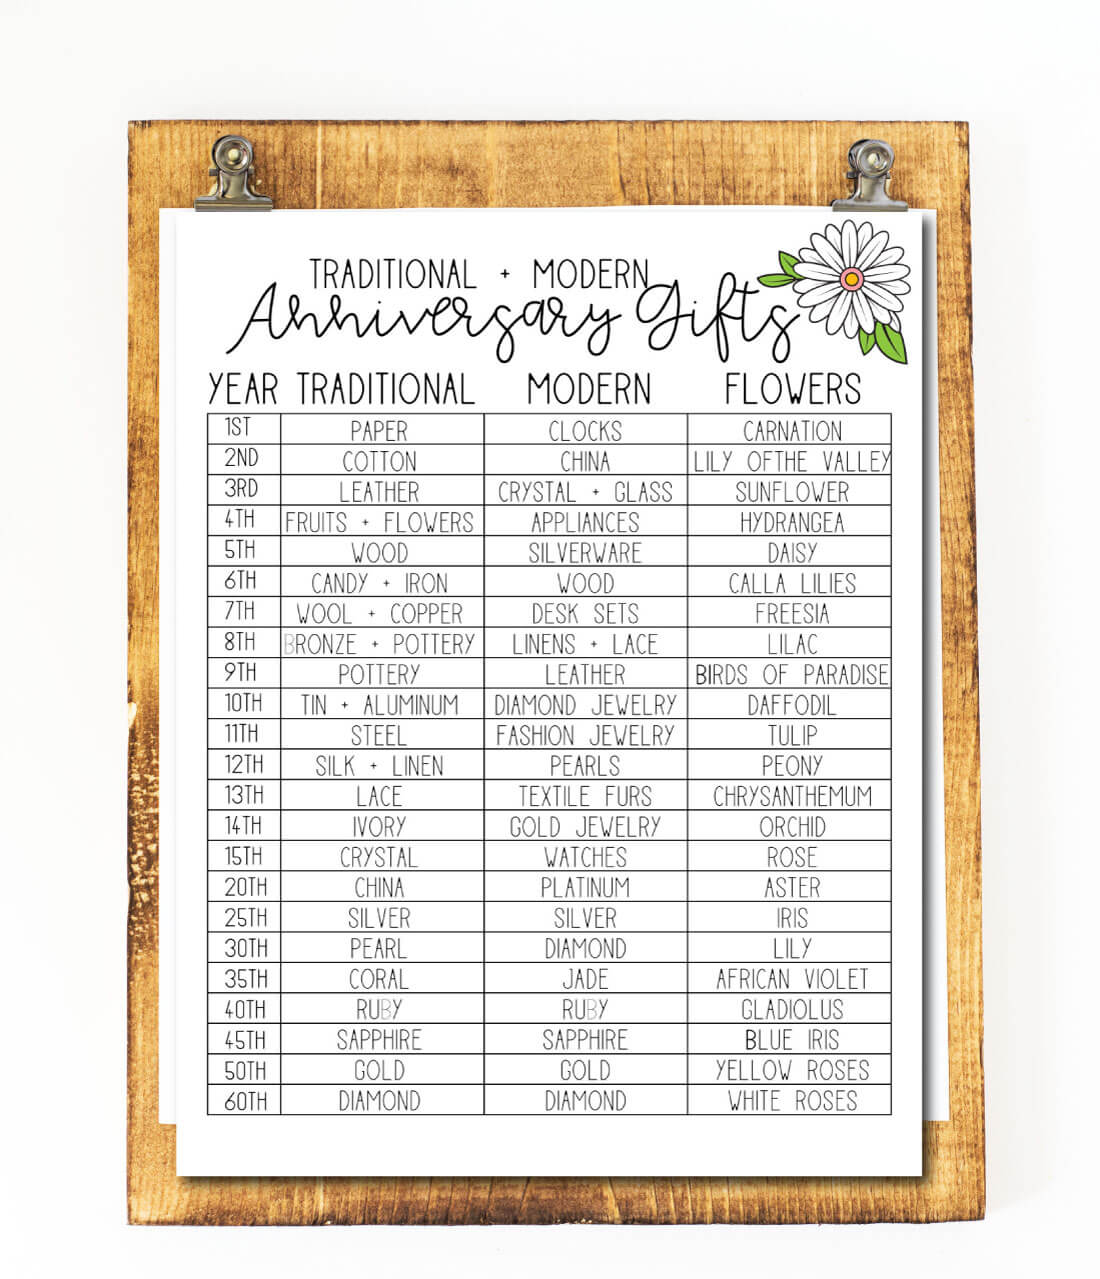 Gift Of Wedding Anniversary: Anniversary Gifts By Year